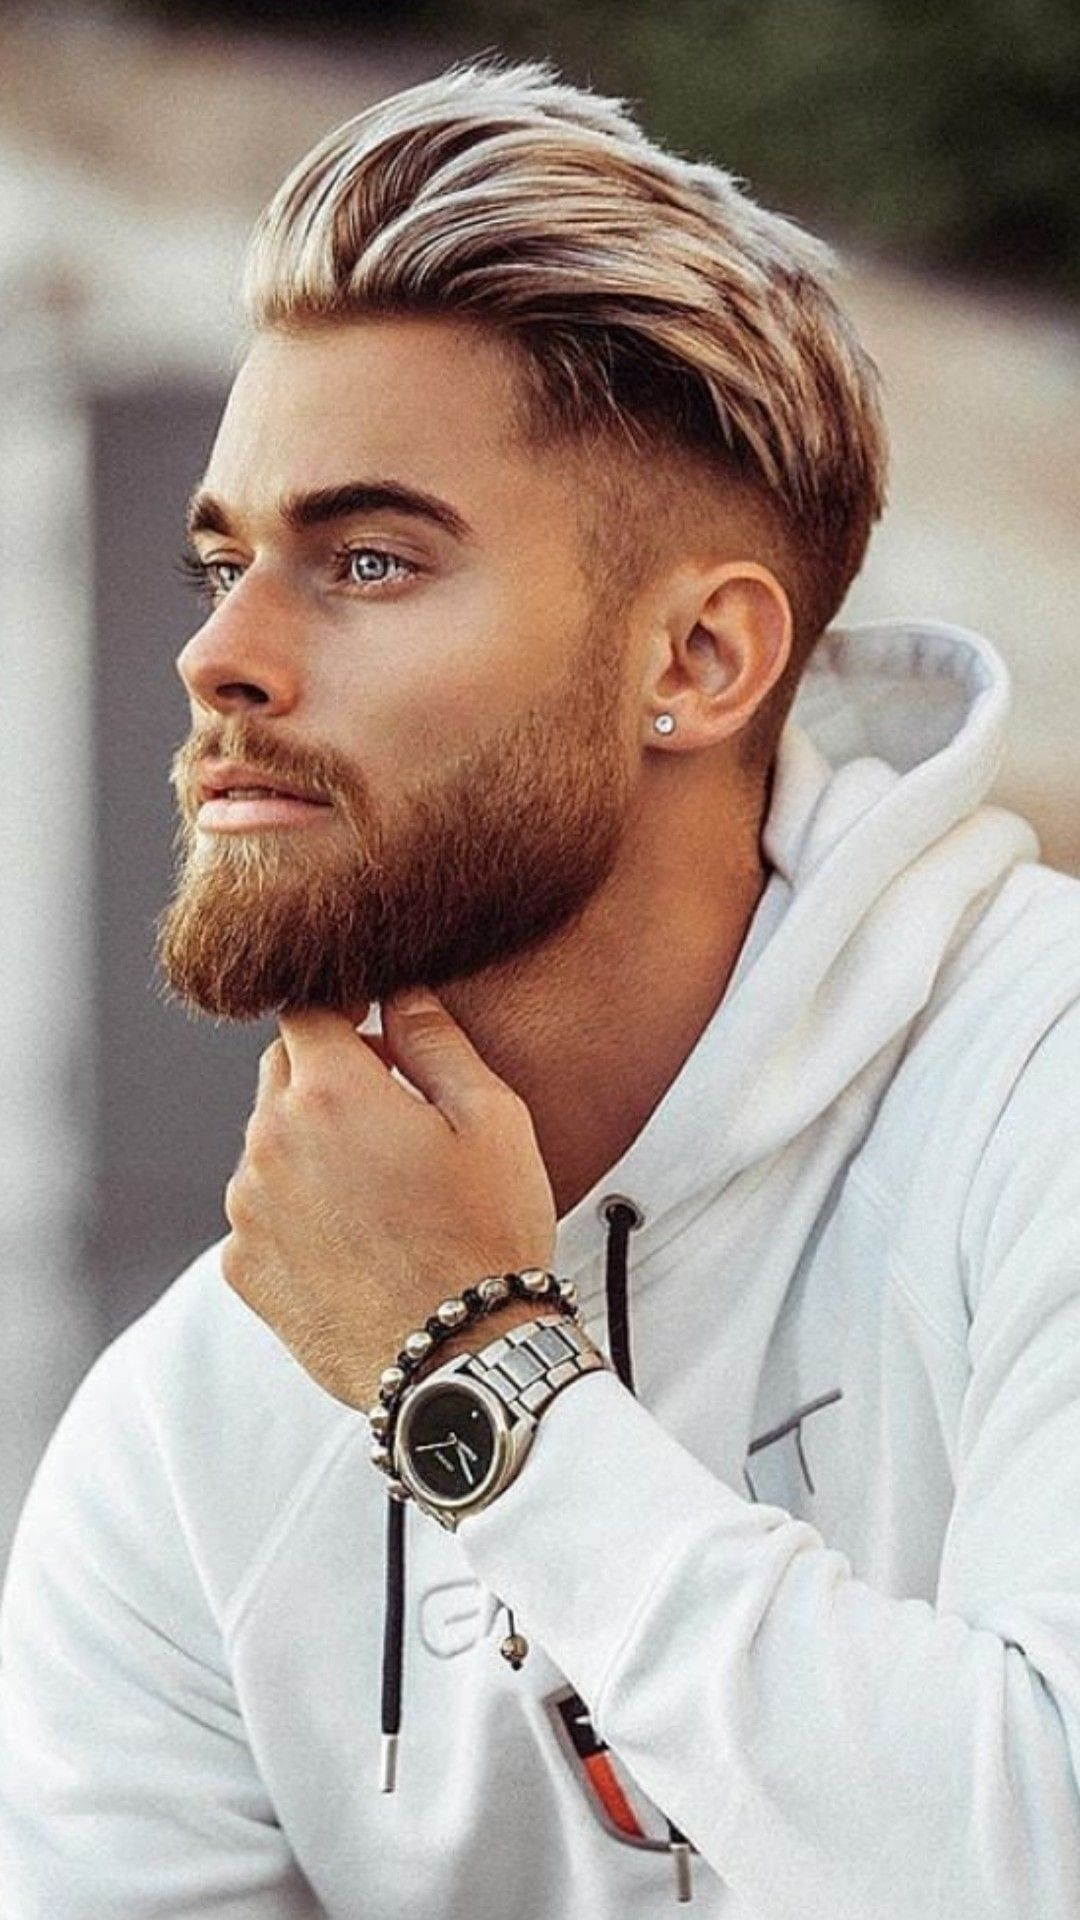 20 Best Medium Length Hairstyles For Men You Must Try 2019 Update Mens Haircuts Short Medium Beard Styles Mens Hairstyles Medium